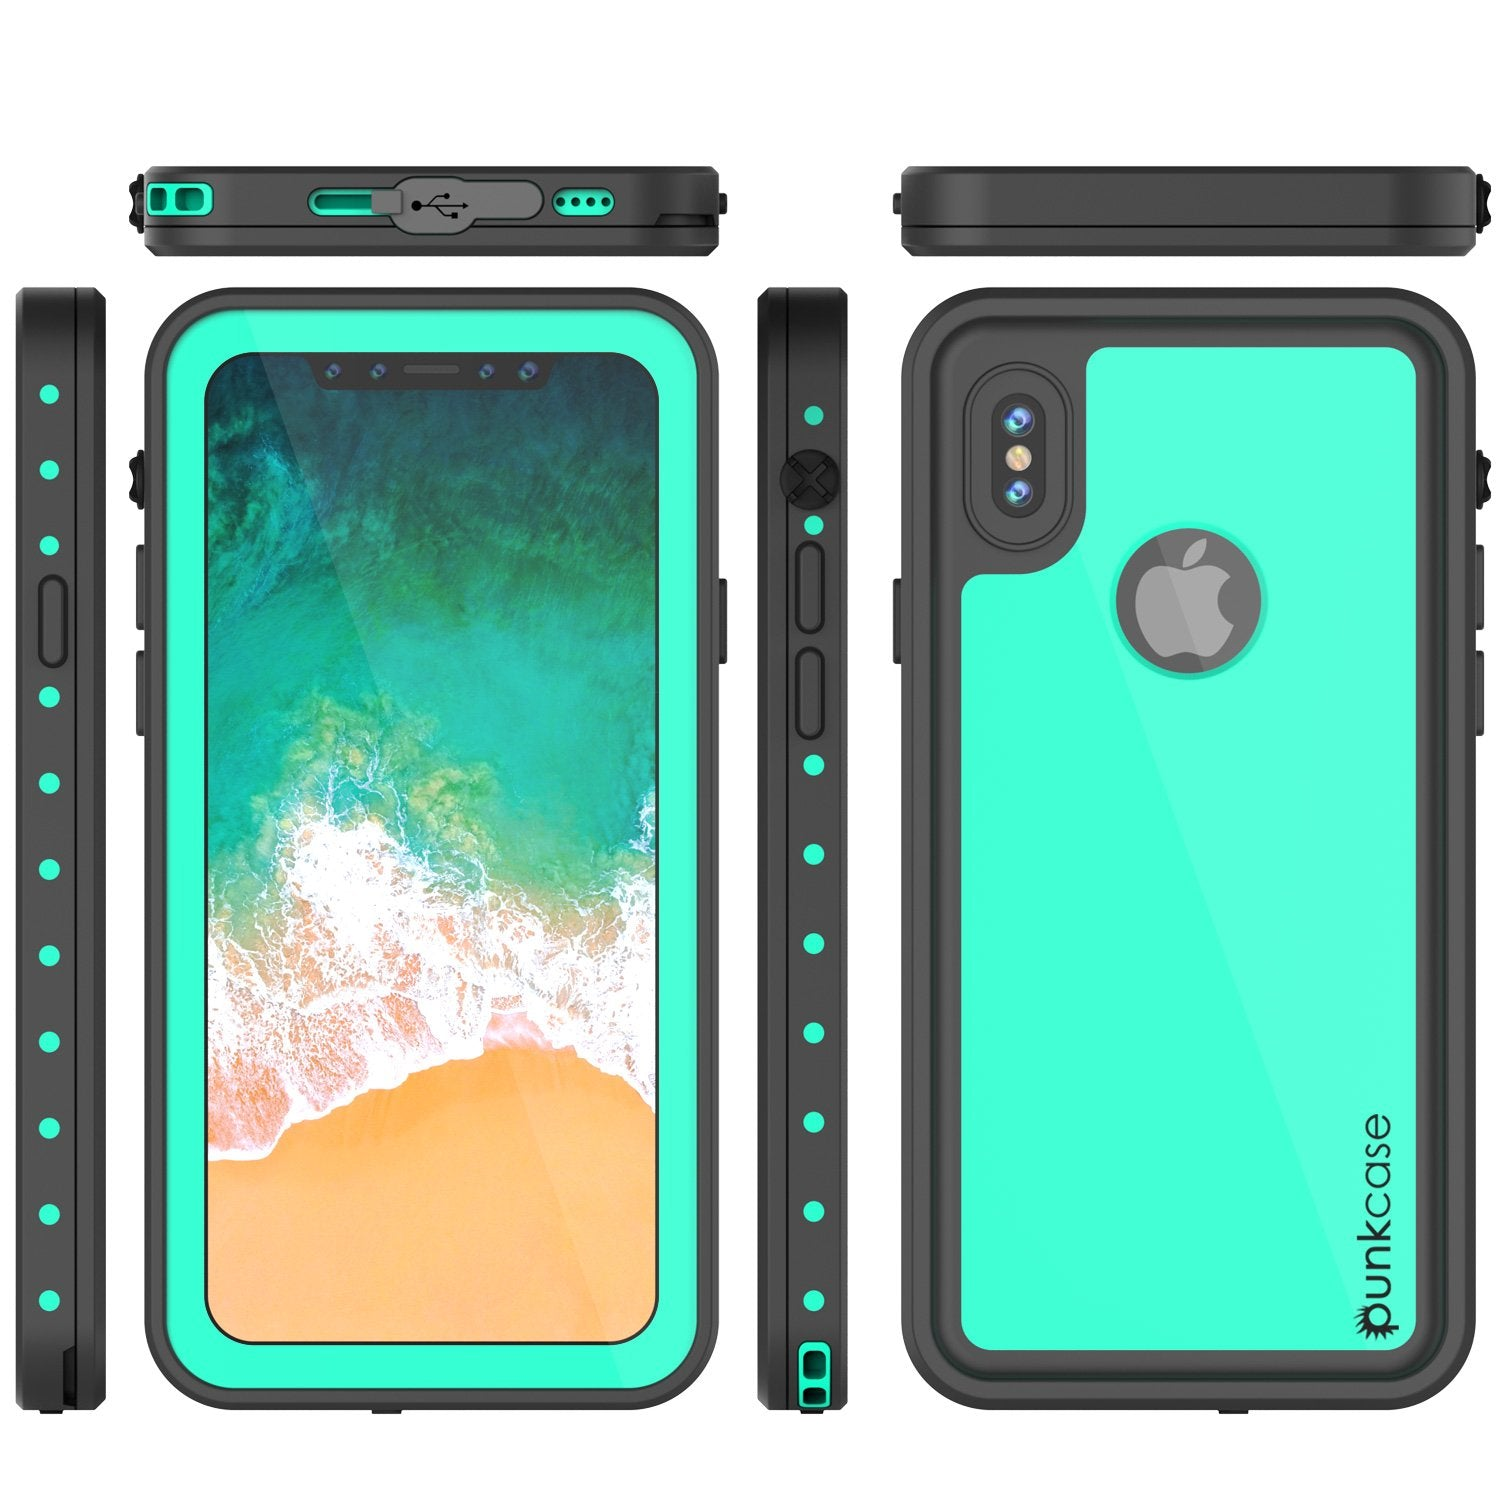 iPhone X Plus Waterproof Case, Punkcase StudStar Series Cover [Teal]